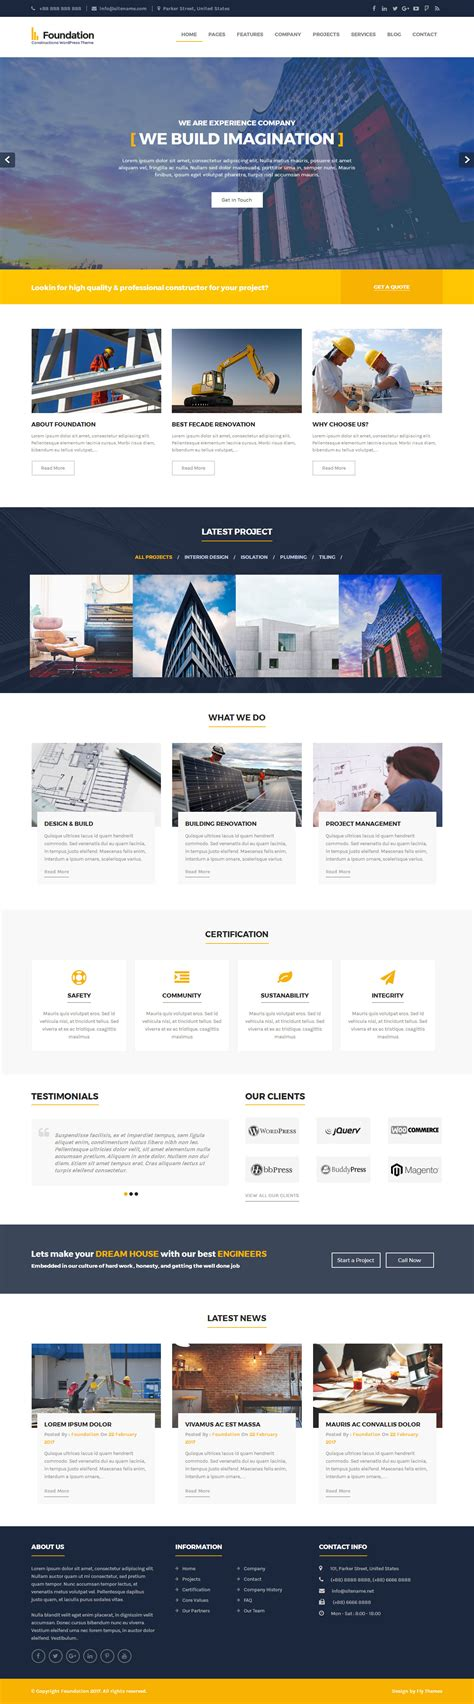 theme foundation foundation constructions wordpress theme flythemes